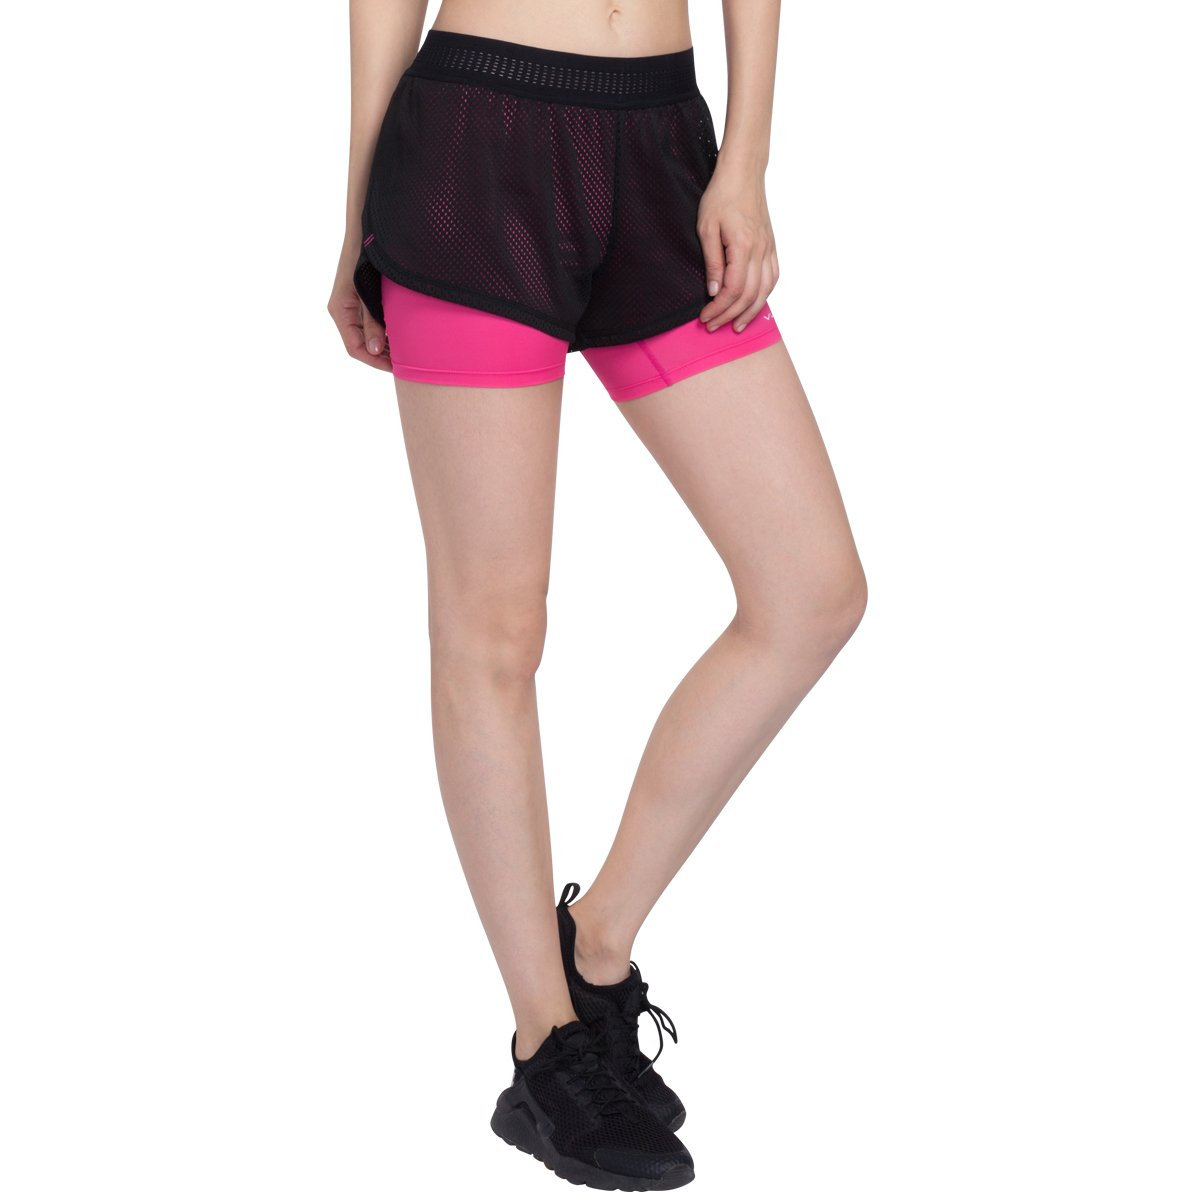 VUTRU Womens Running Shorts Mesh Double Layer Gym Fitness Workout Athletic Shorts